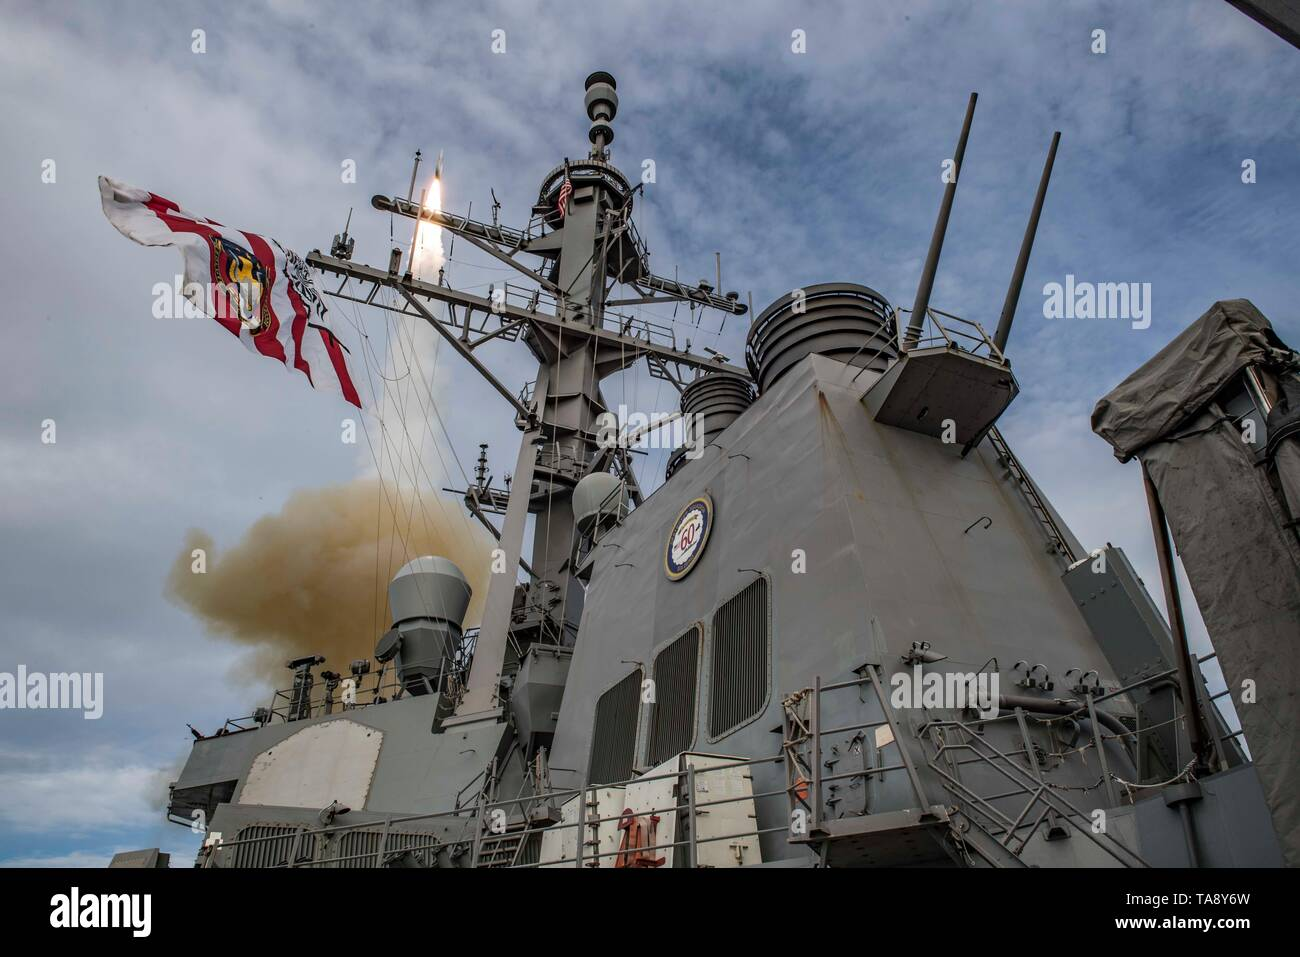 190517-N-TI693-0080    ATLANTIC OCEAN (May 17, 2019) - The Arleigh Burke-class guided-missile destroyer USS Carney (DDG 64) fires an SM-2 missile during a live-fire exercise as part of exercise Formidable Shield 19, May 17, 2019. Formidable Shield is designed to improve allied interoperability in a live-fire integrated air and missile defense environment, using NATO command and control reporting structures. (U.S. Navy photo by Mass Communication Specialist 1st Class Fred Gray IV/Released) - Stock Image